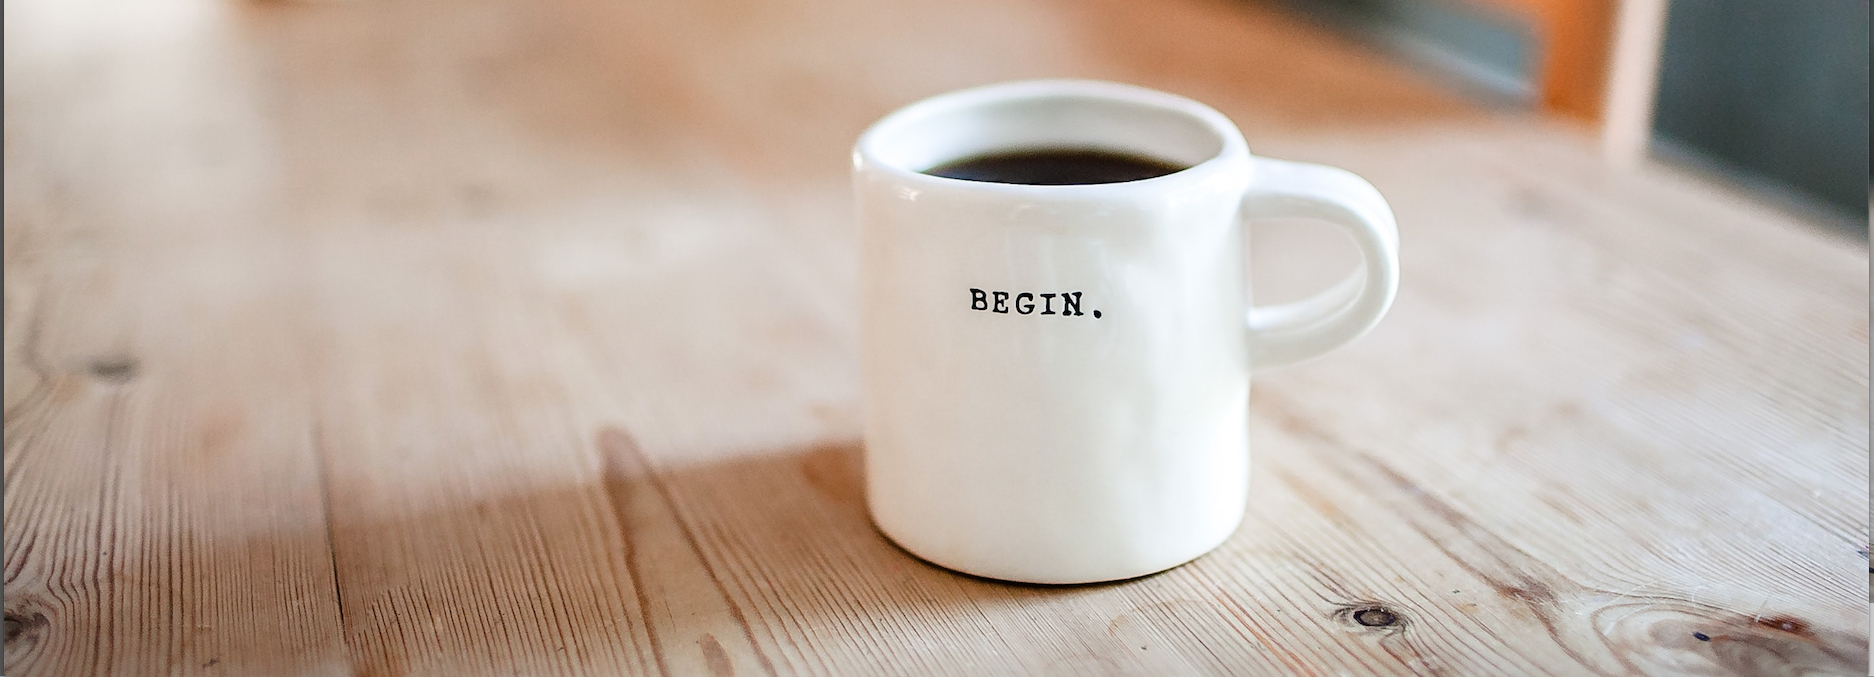 mug with 'begin' typed on it